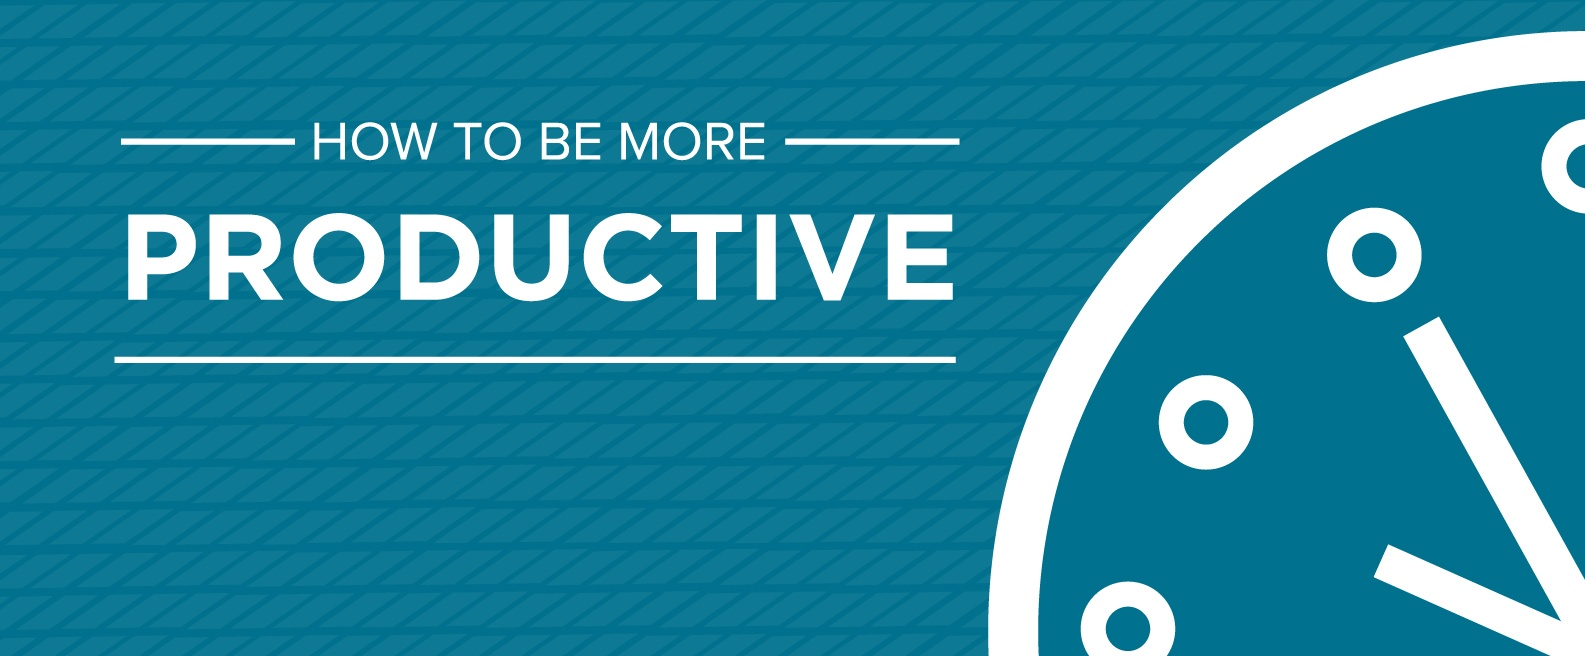 How to Be More Productive: Tips & Tools for Boosting Your Performance at Work [Free Ebook]